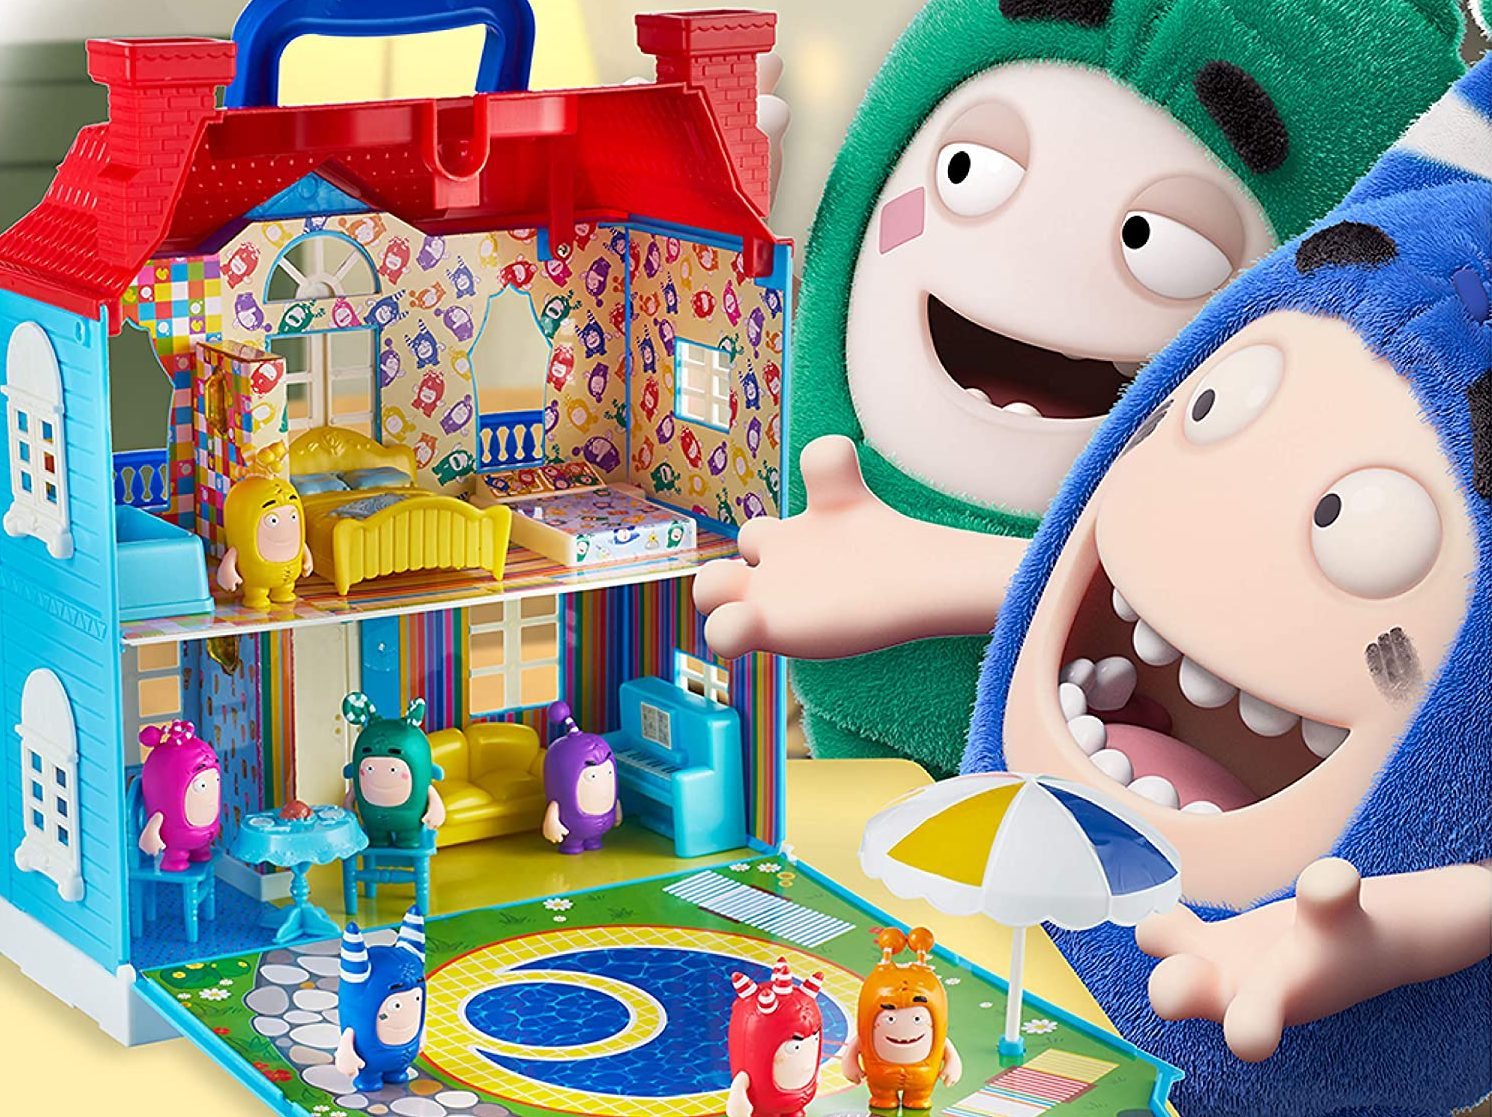 ODDBODS Playset with House for Kids